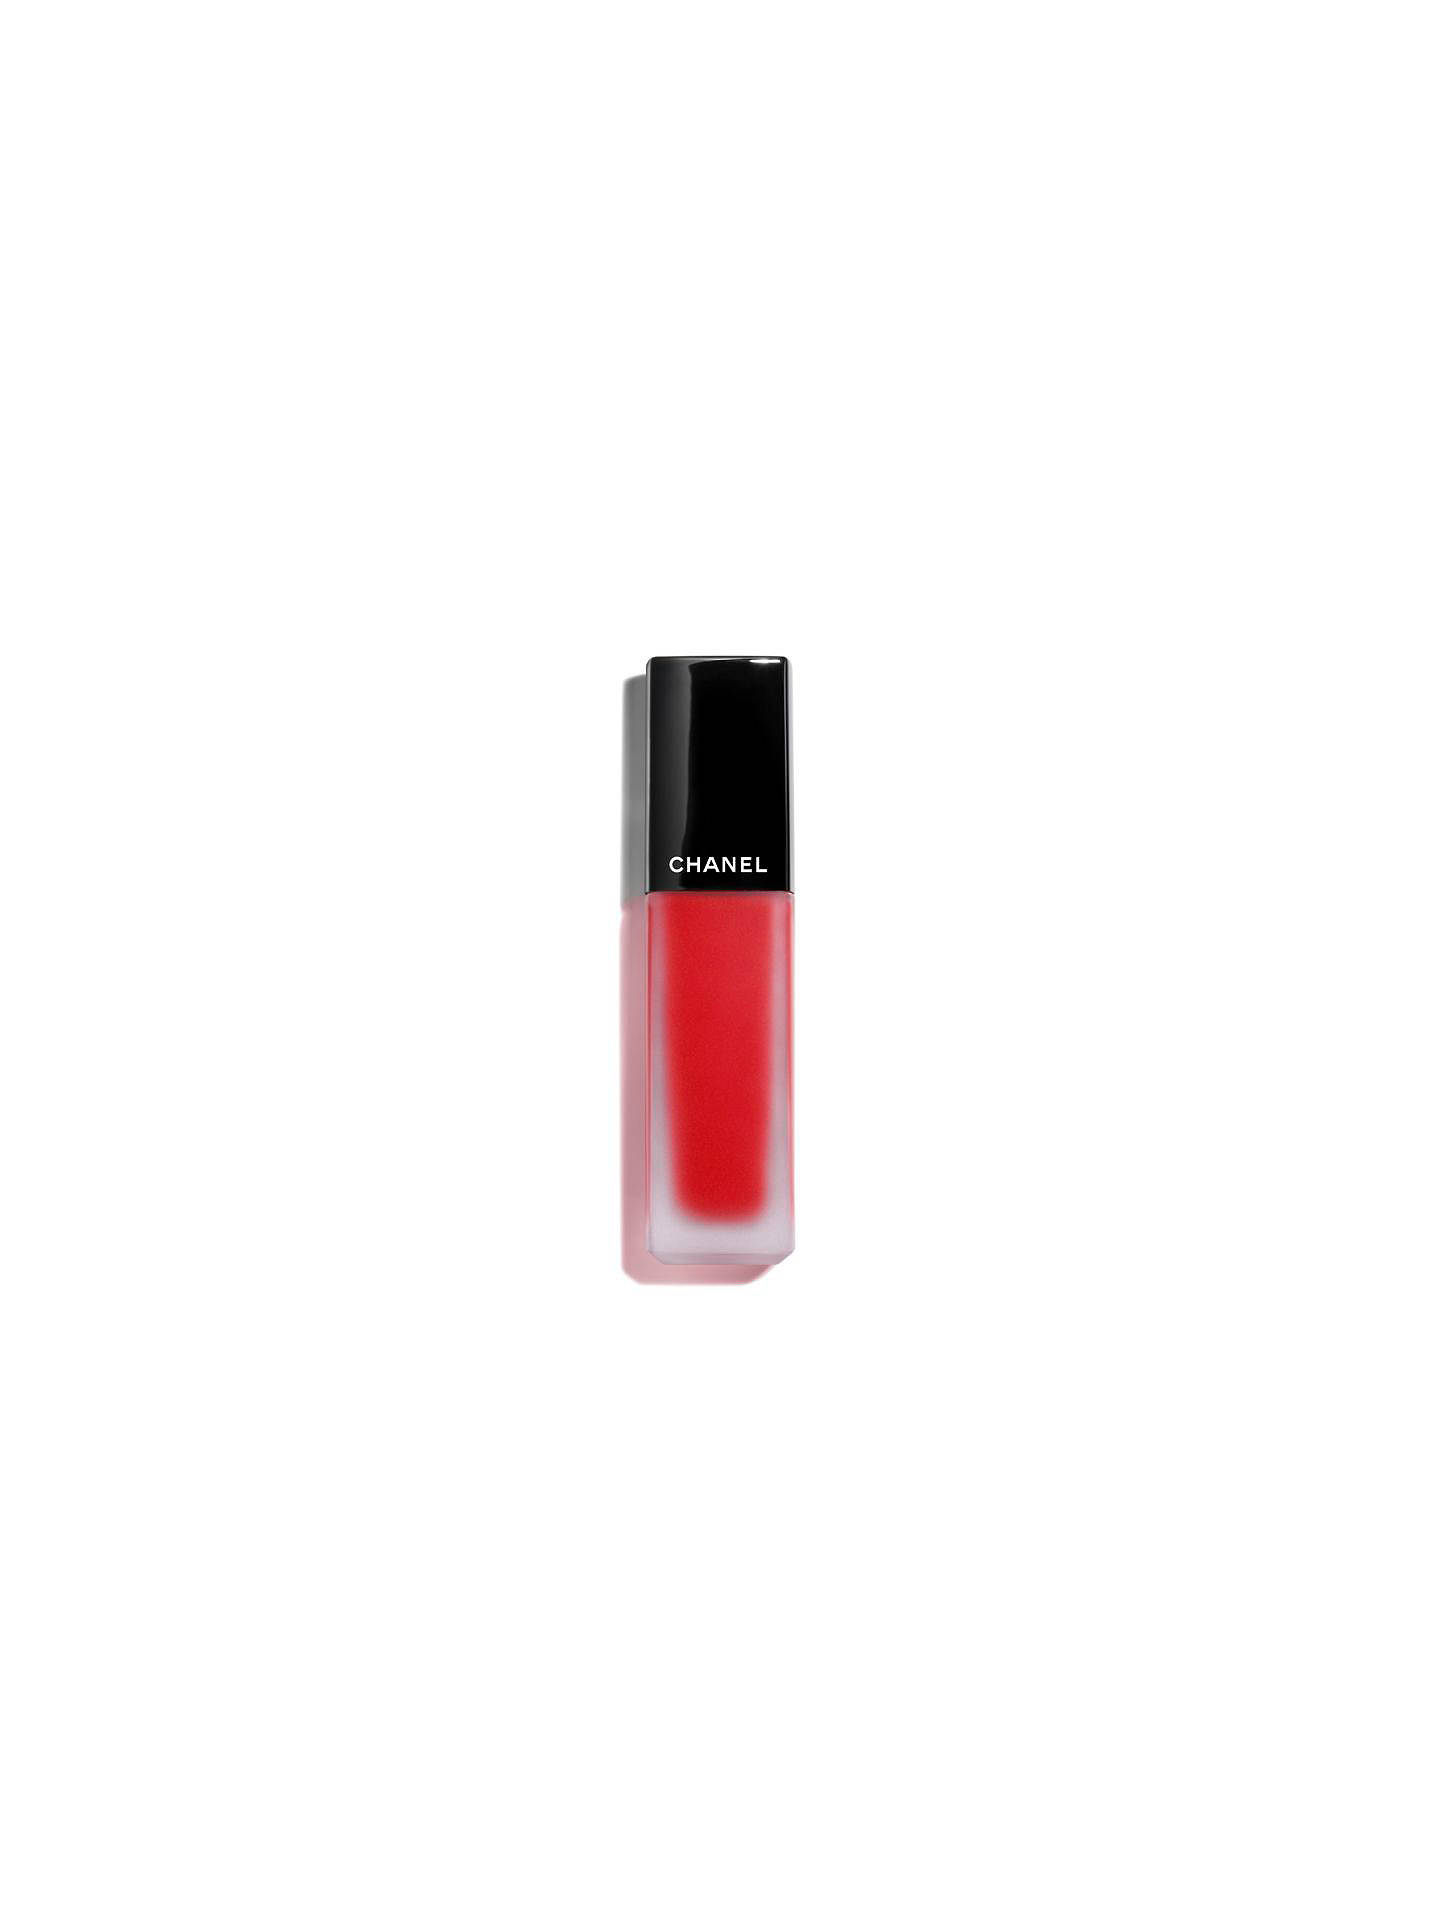 BuyCHANEL ROUGE ALLURE INK Matte Liquid Lip Colour, 148 Libéré Online at johnlewis.com